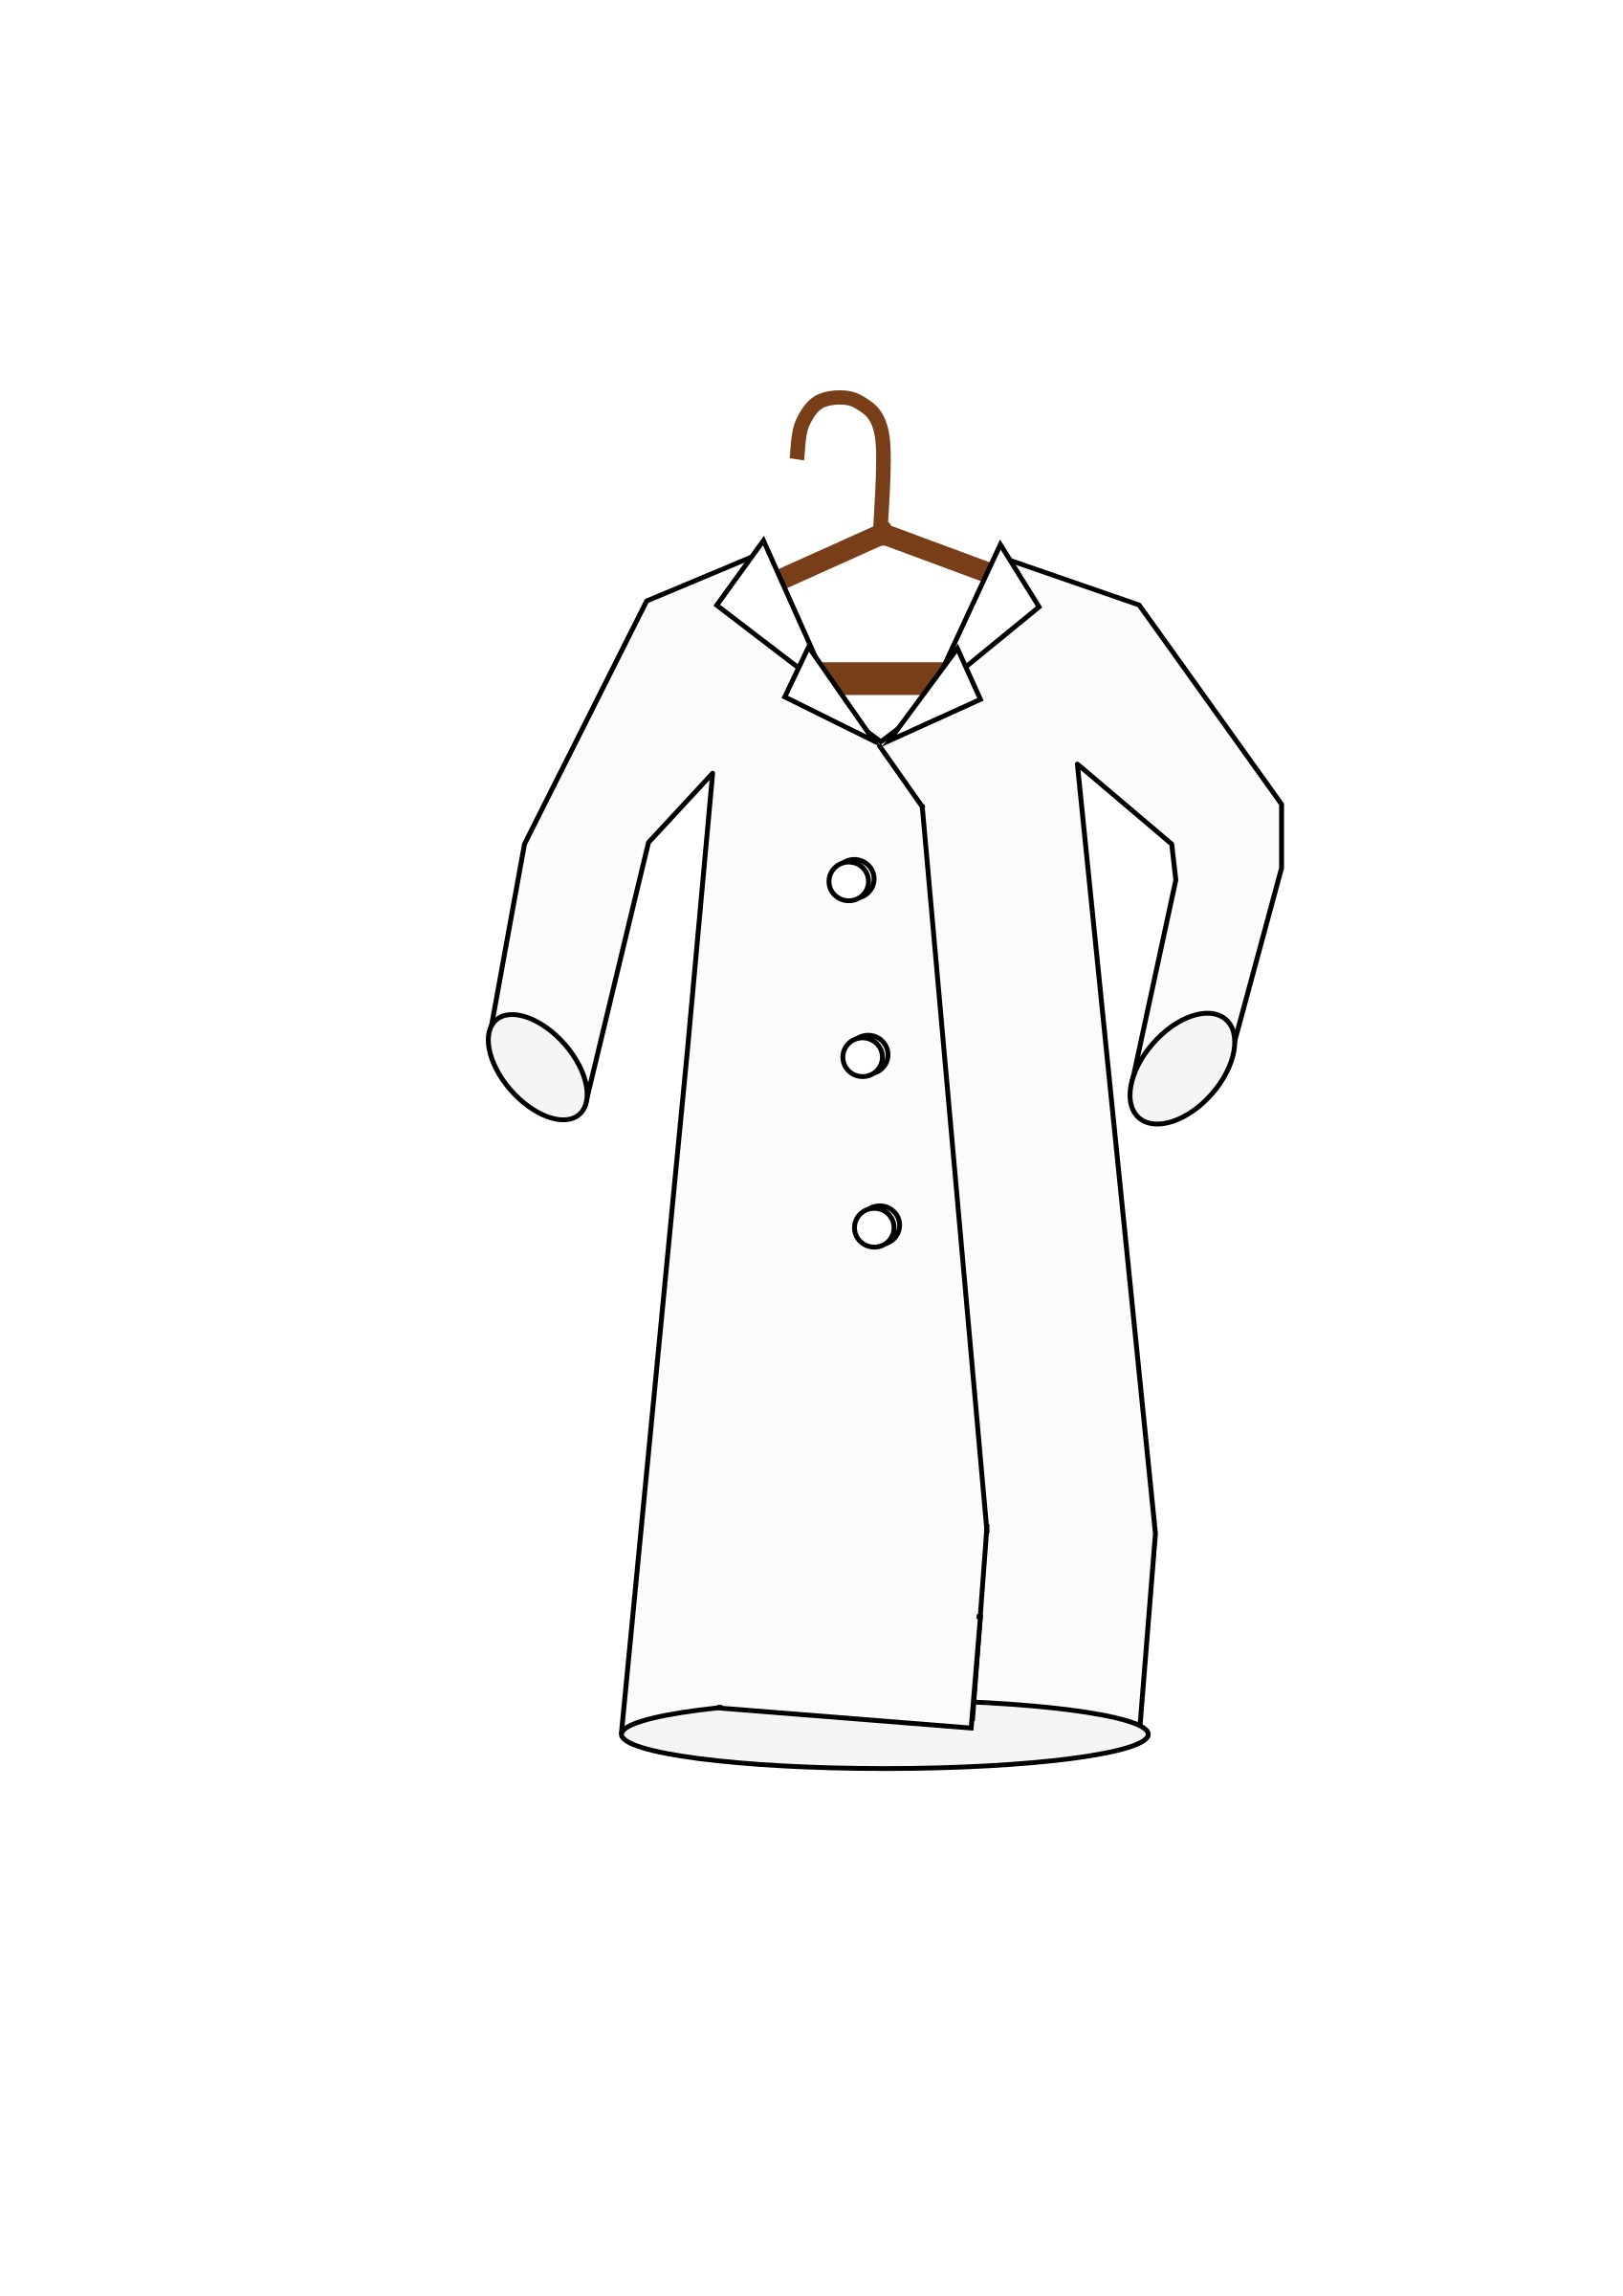 Lab coat on a hanger by barnheartowl